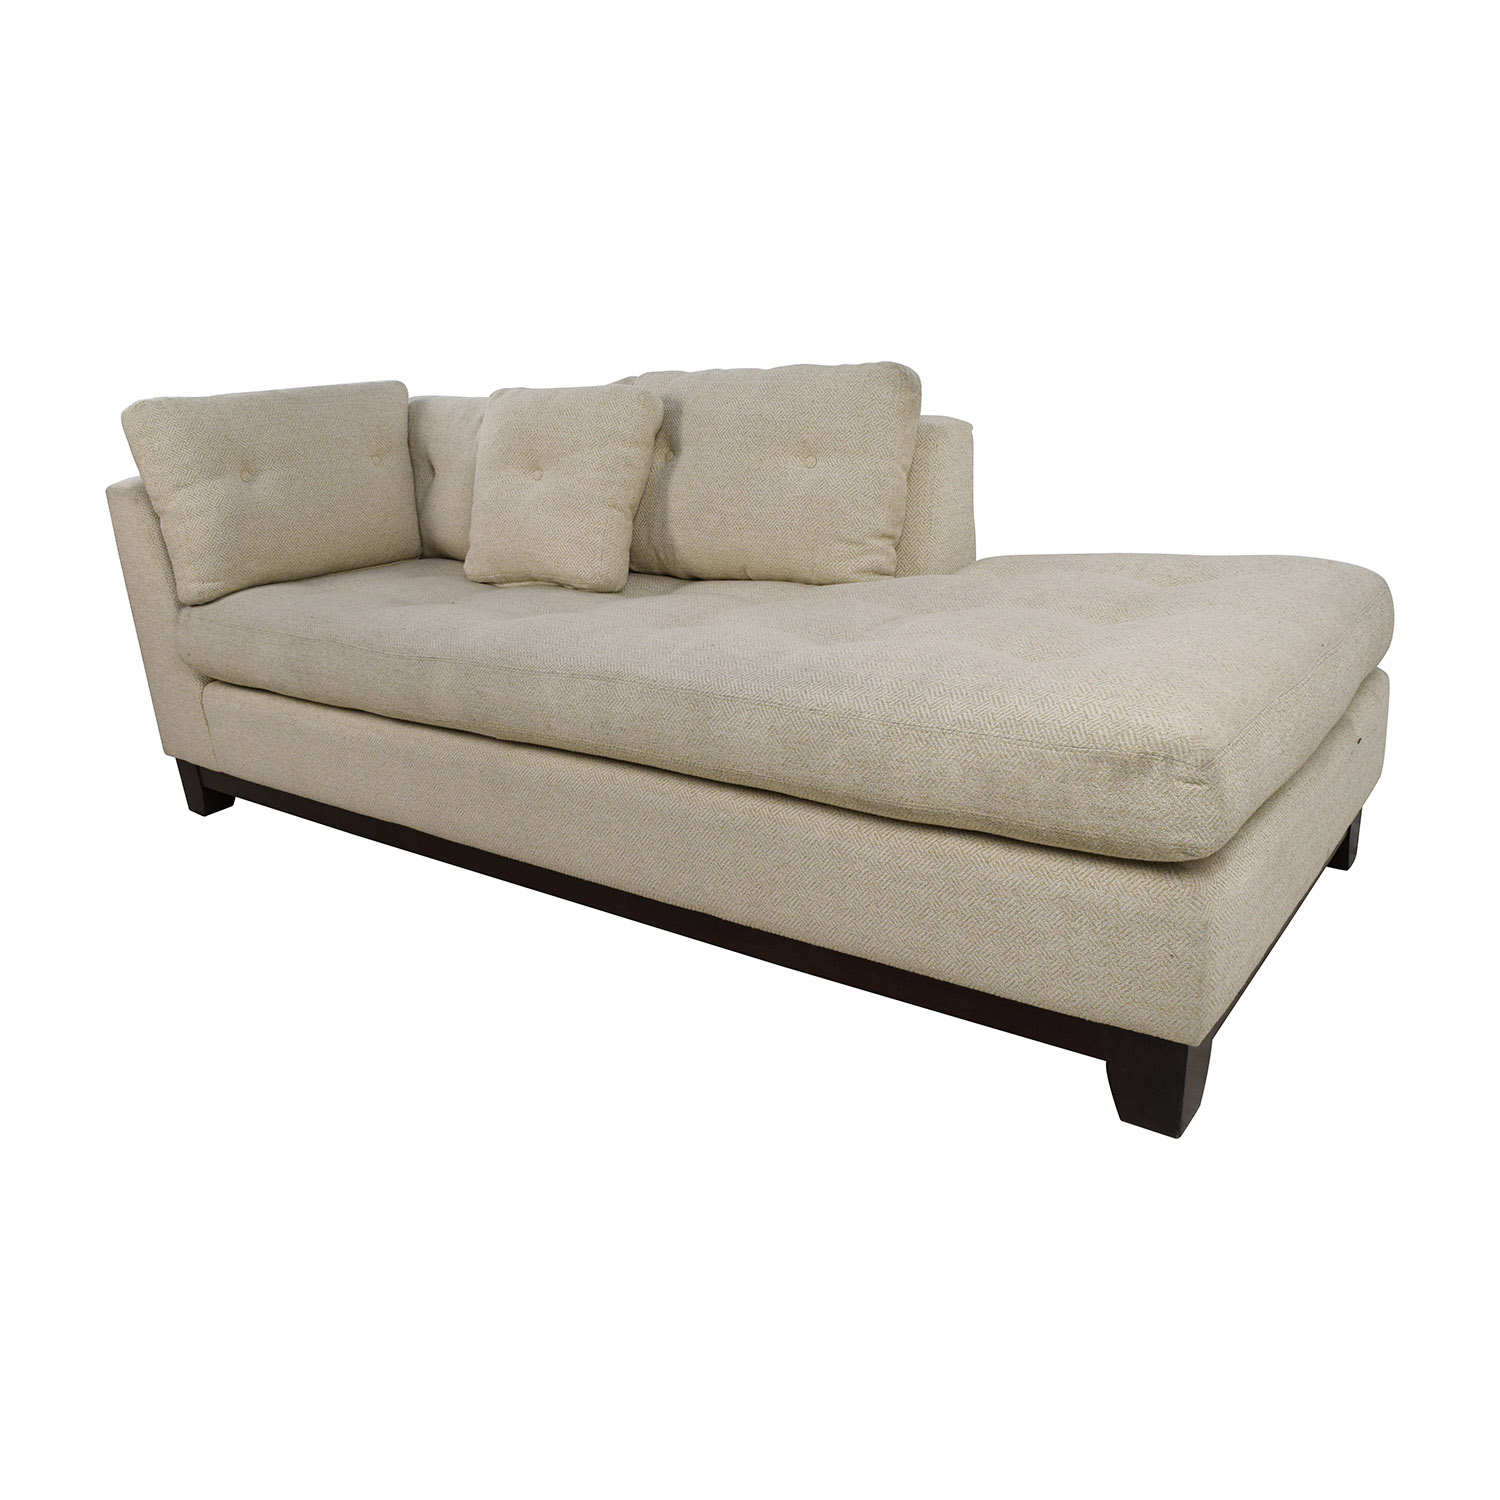 Amazing 30  Tufted Chaise Lounge